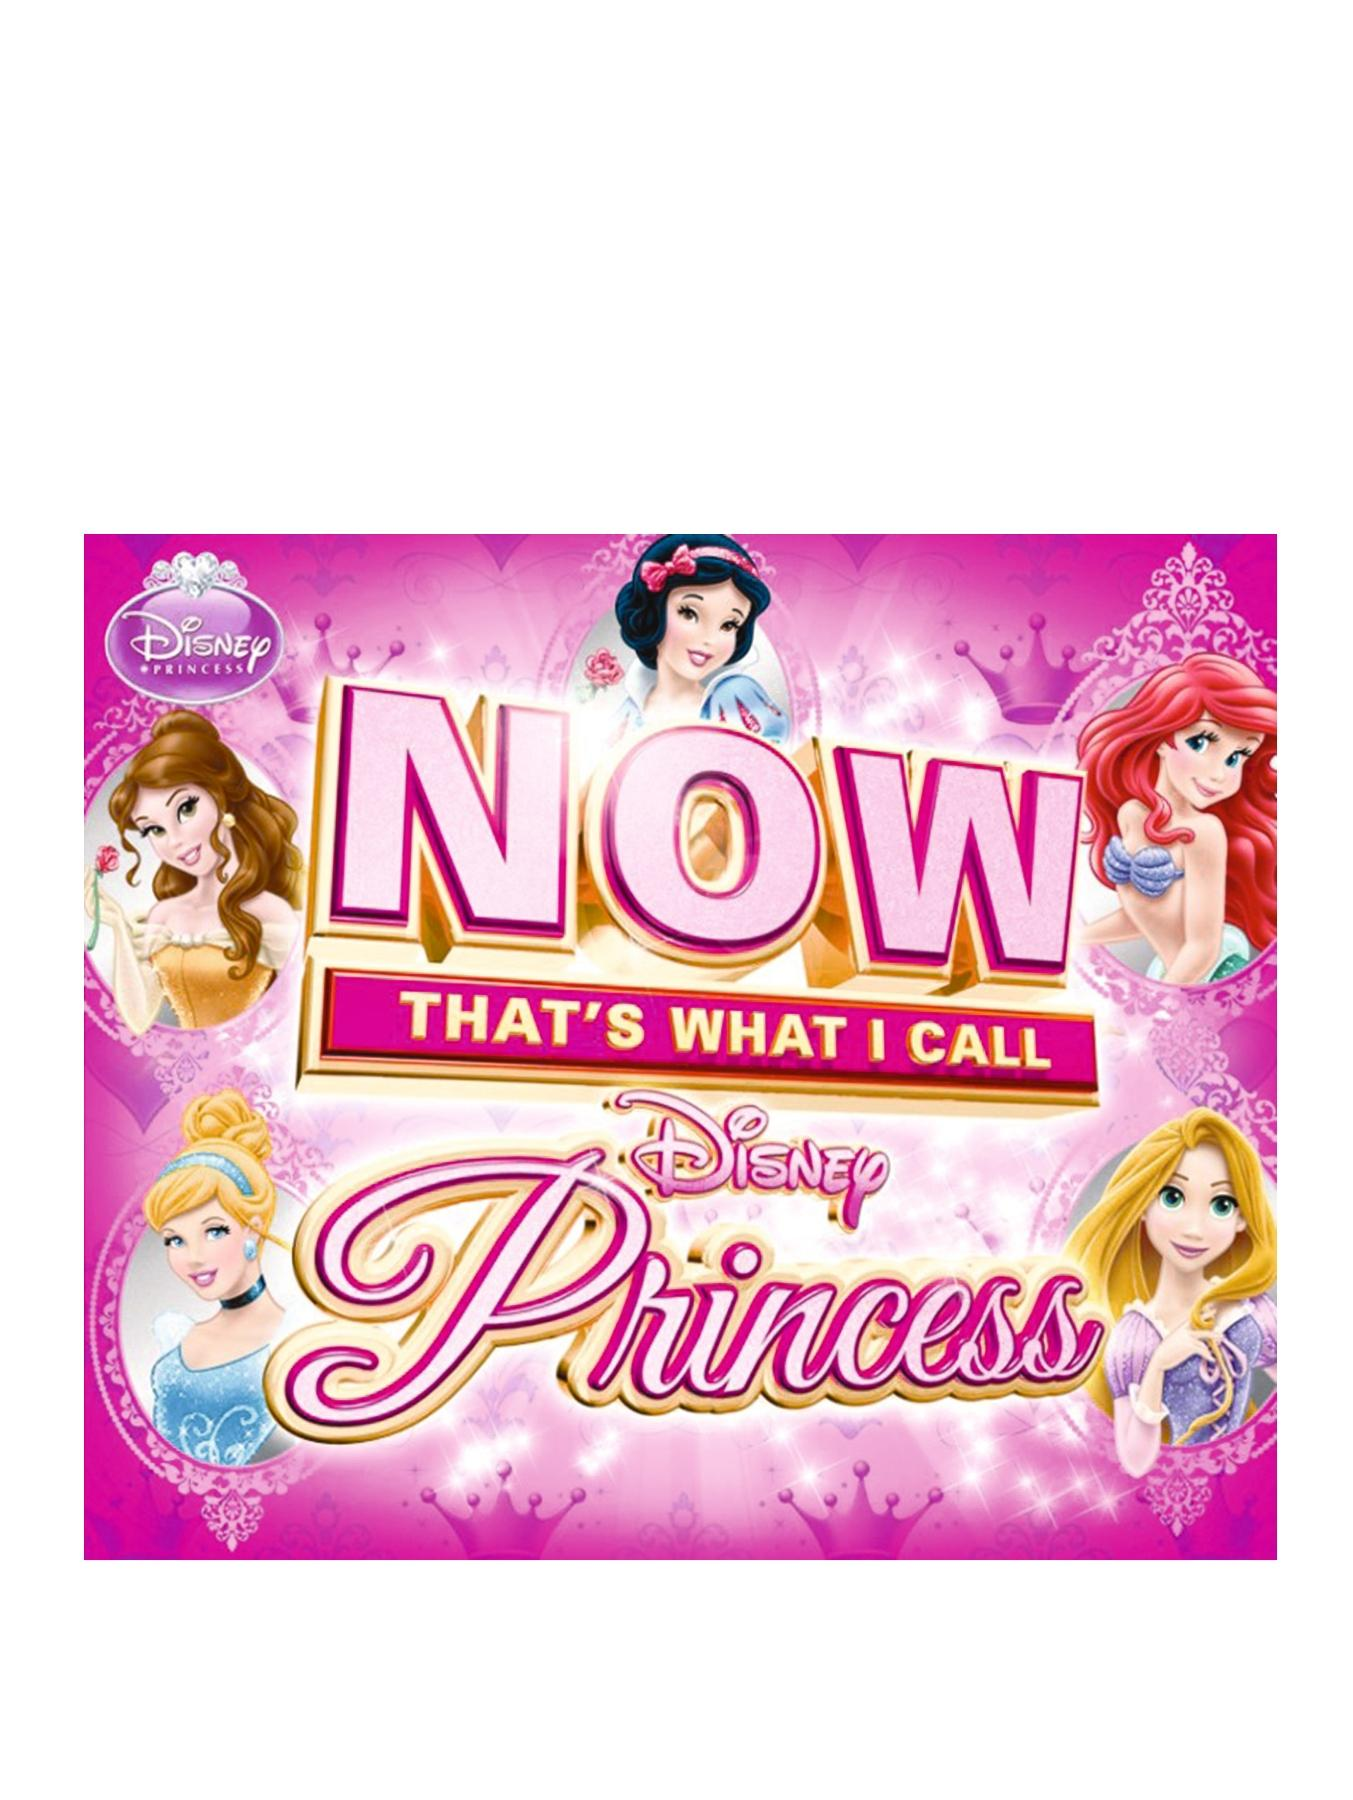 That's What I Call NOW Disney Princess CD